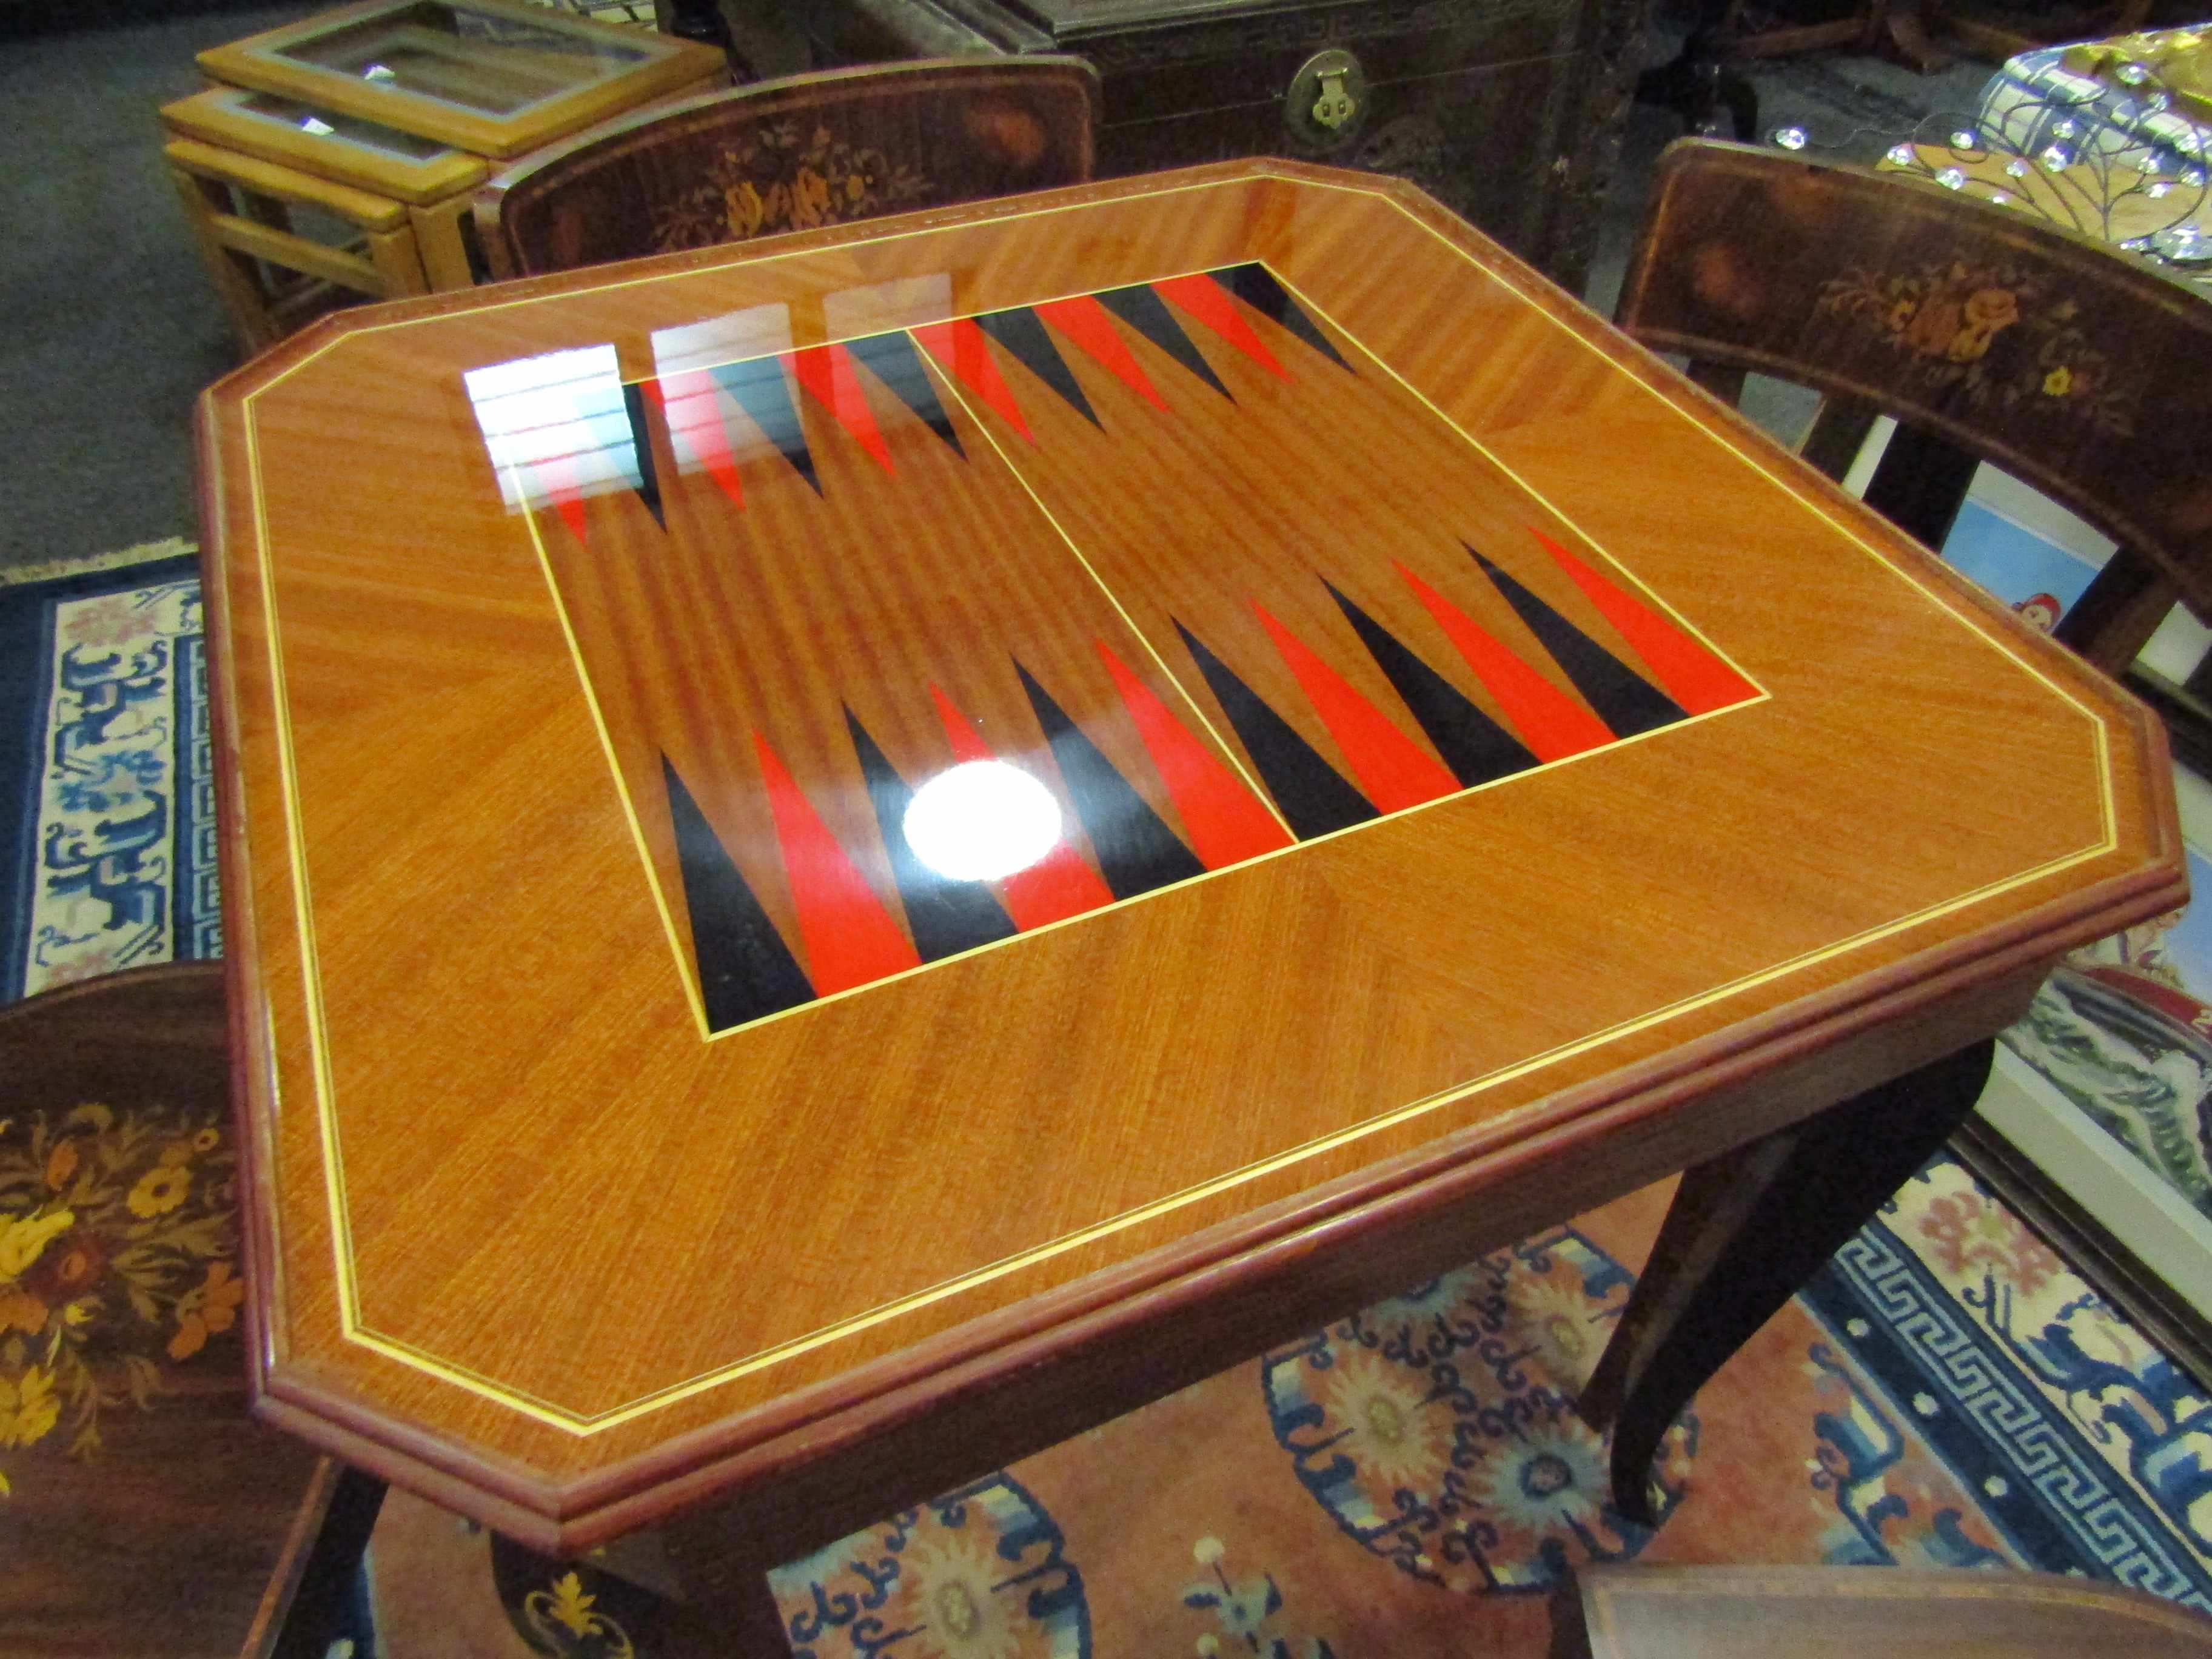 An Italian Indian rosewood games table with marquetry floral inlay. - Image 5 of 6